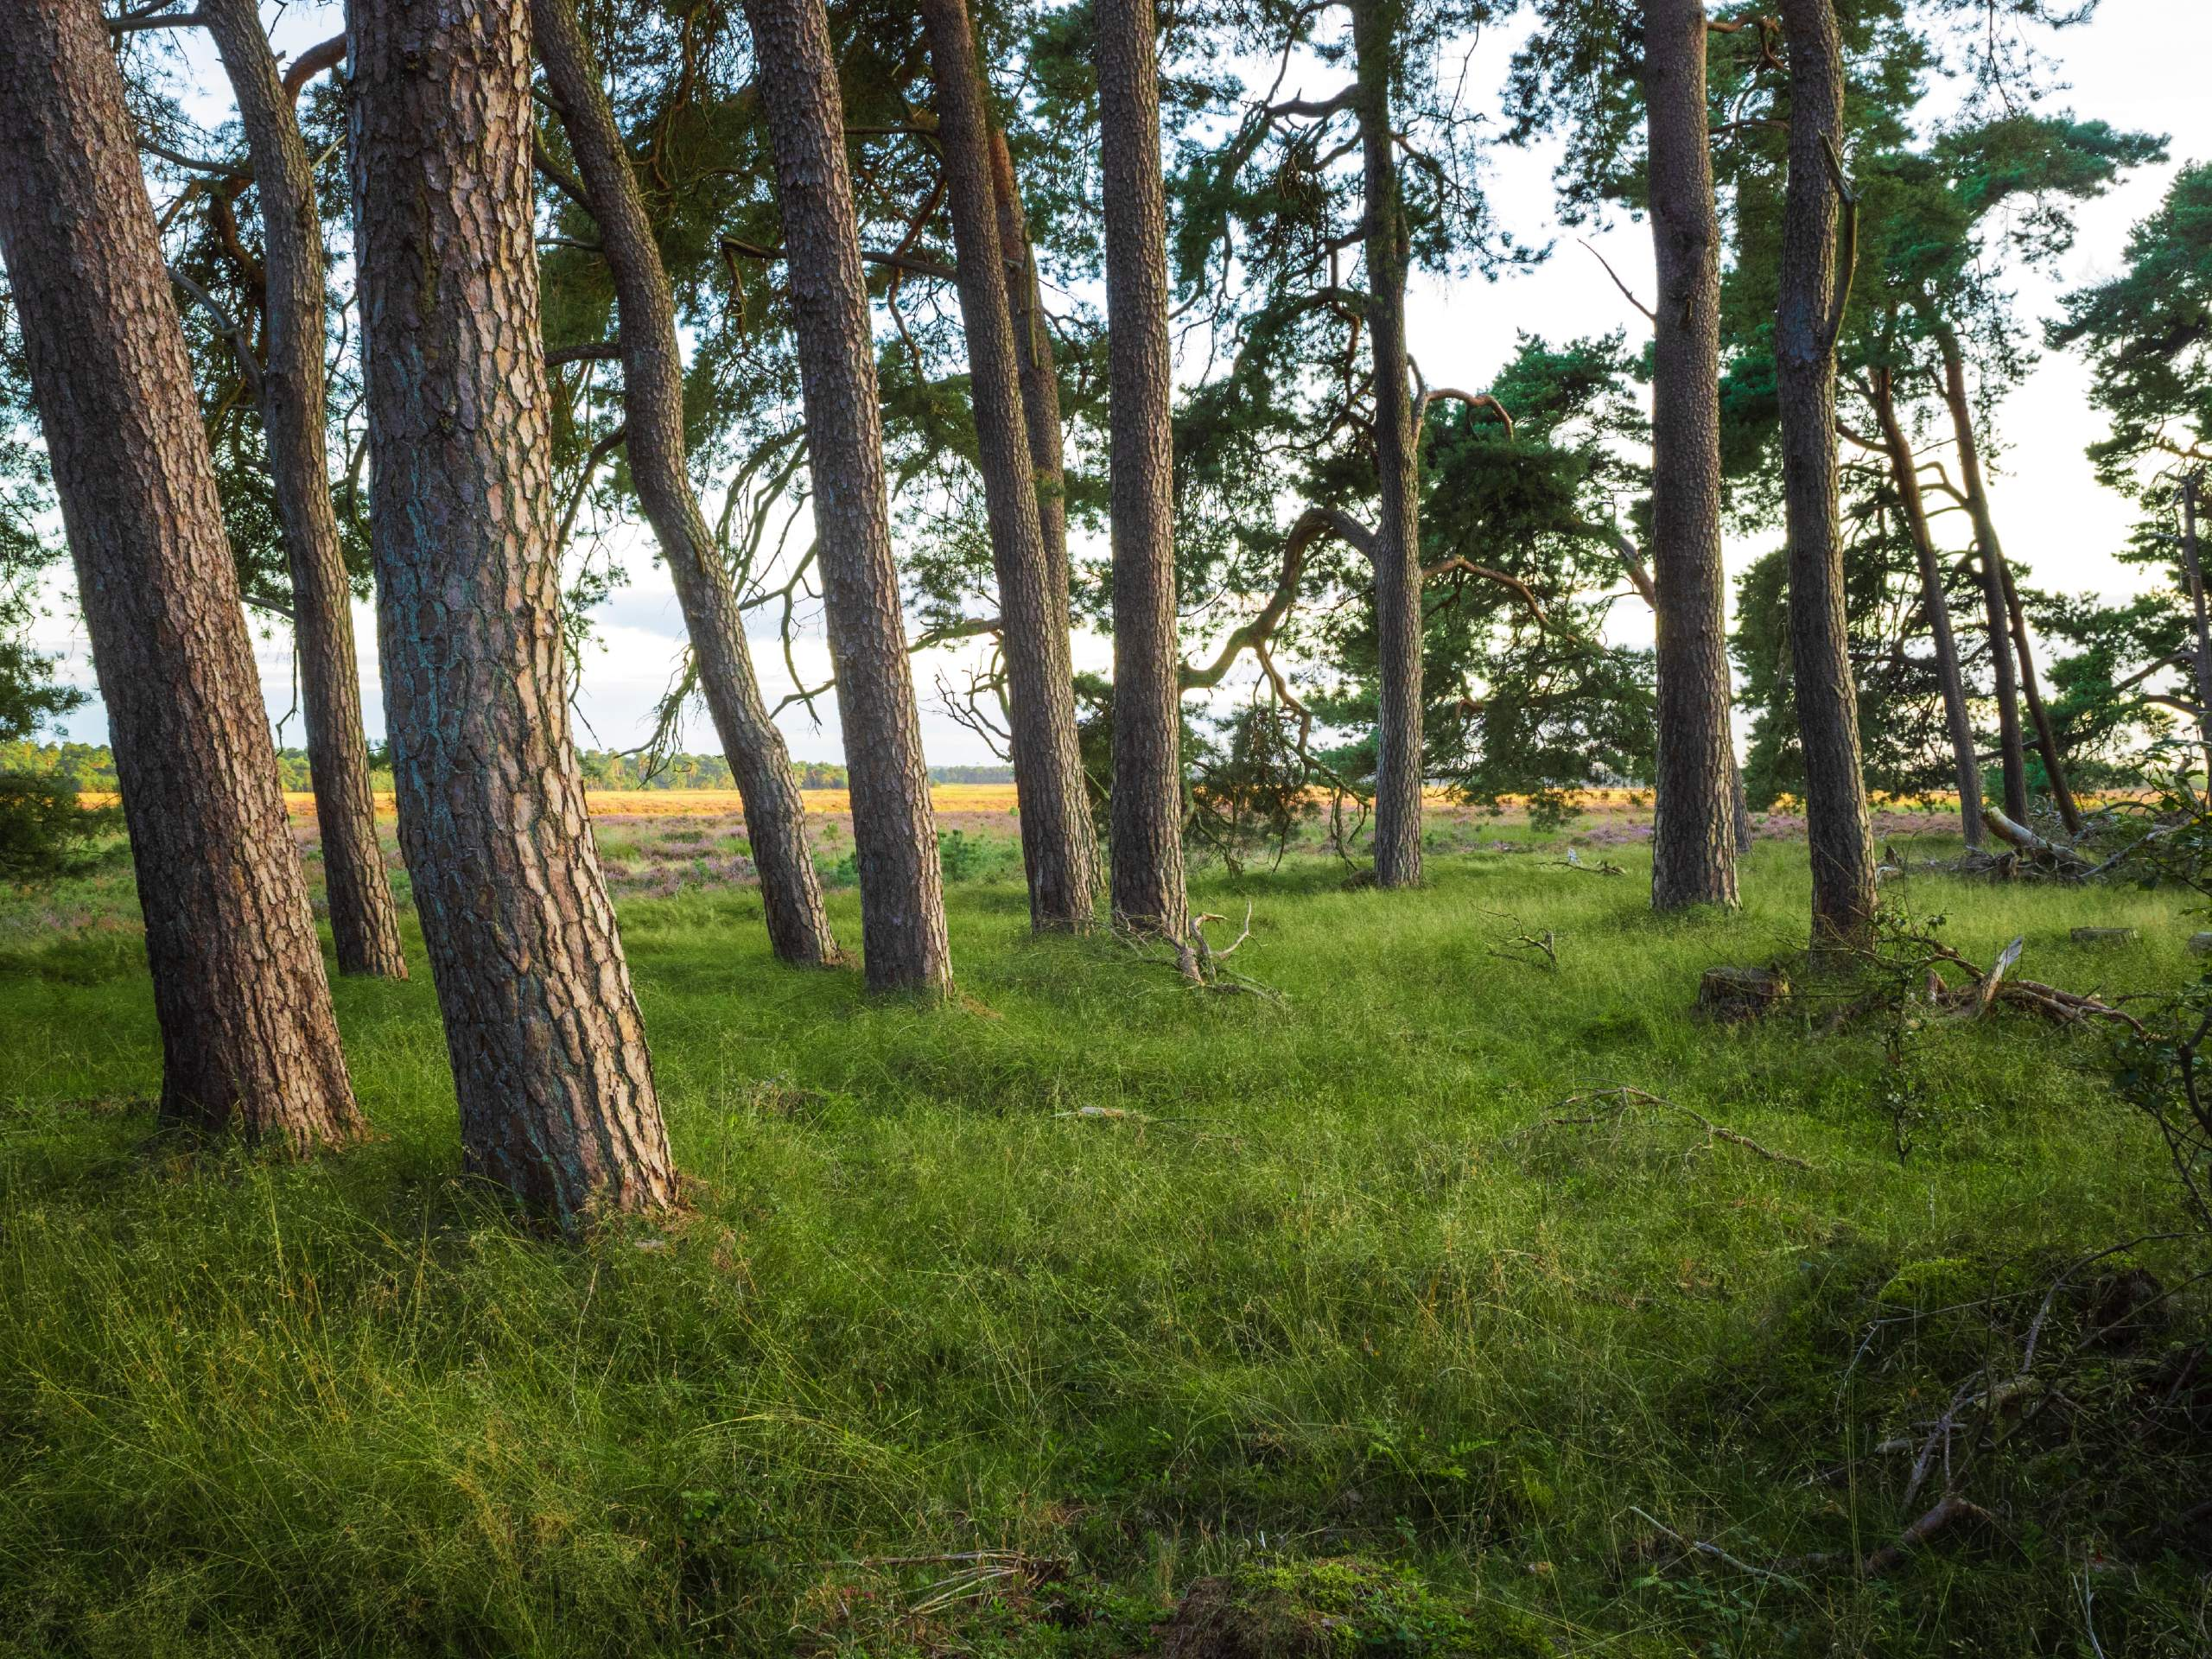 Trees along the biking route of the self-guided biking tour in Netherland